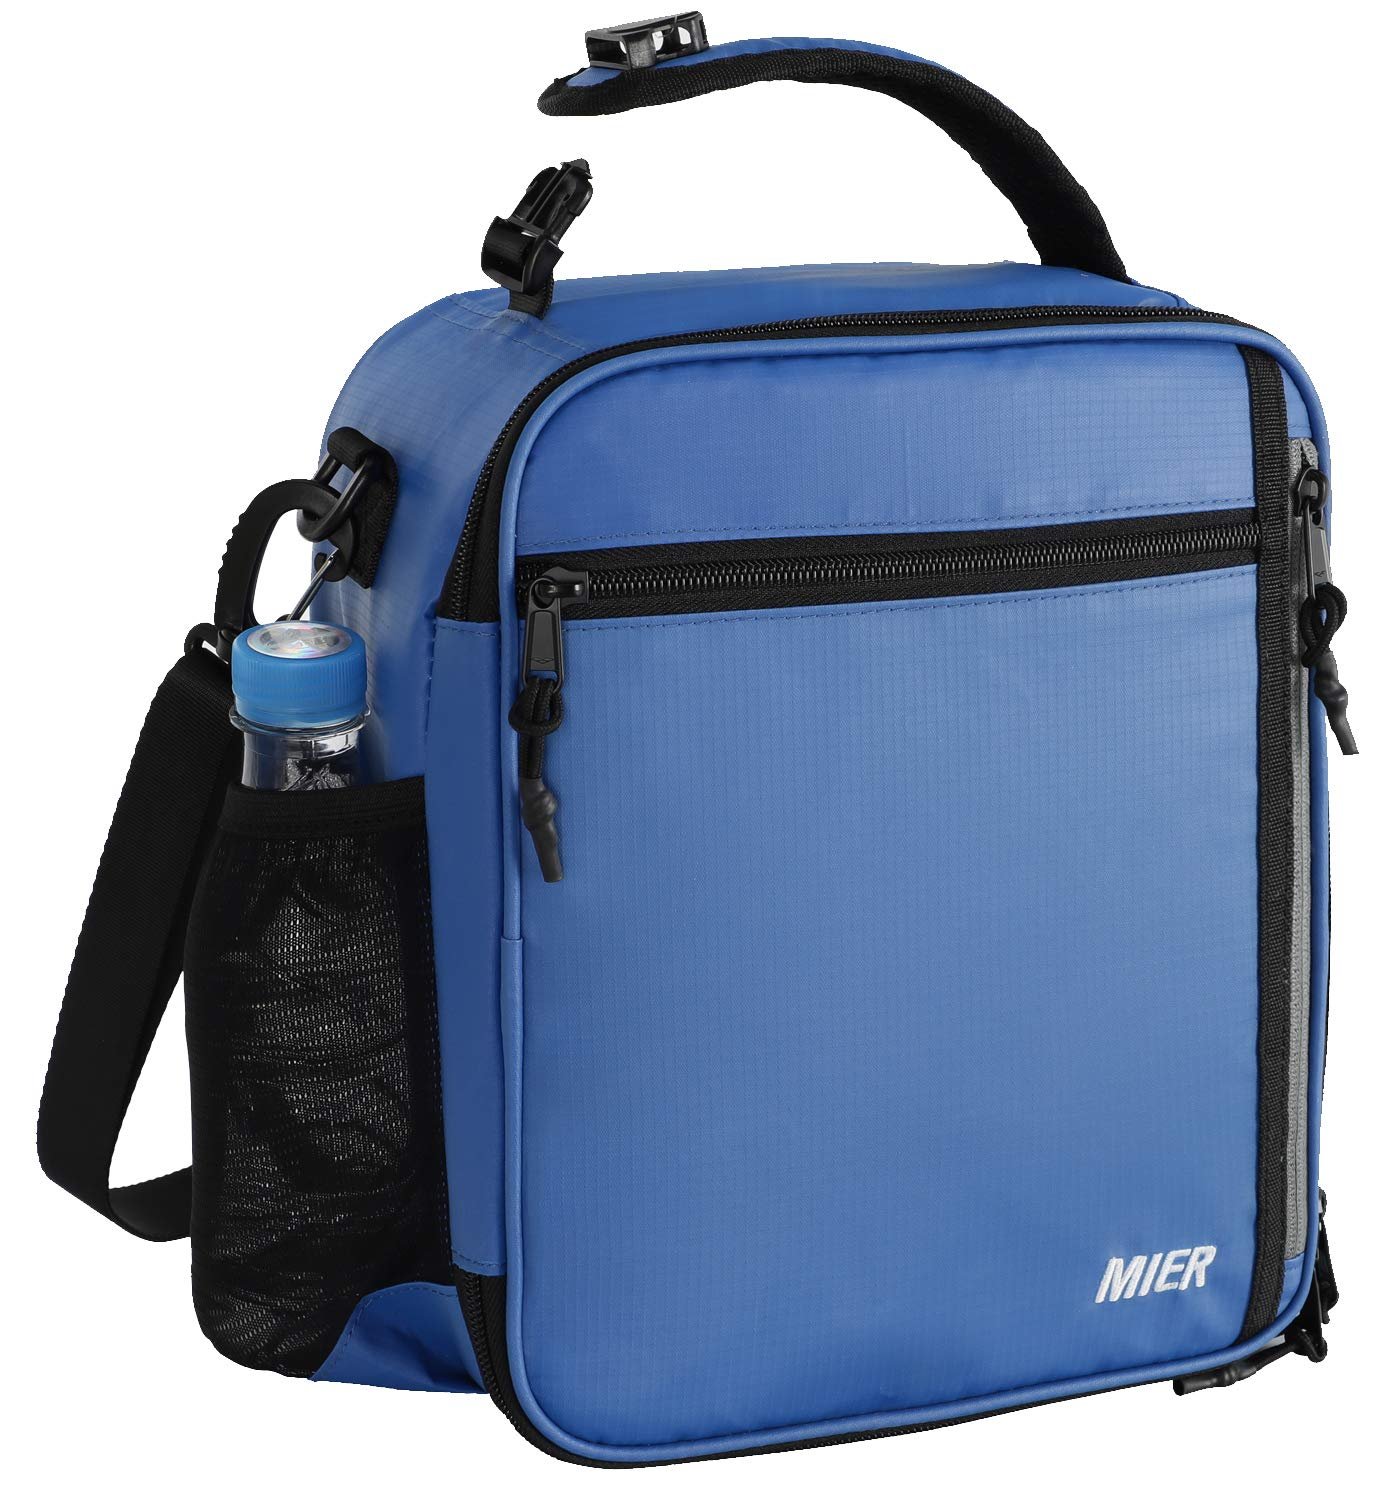 MIER Insulated Lunch Box Bag for Men Women Adult Teen Children, Lunch Cooler Bag with Shoulder Strap and Bottle Holder, 12 Can, Navy Blue